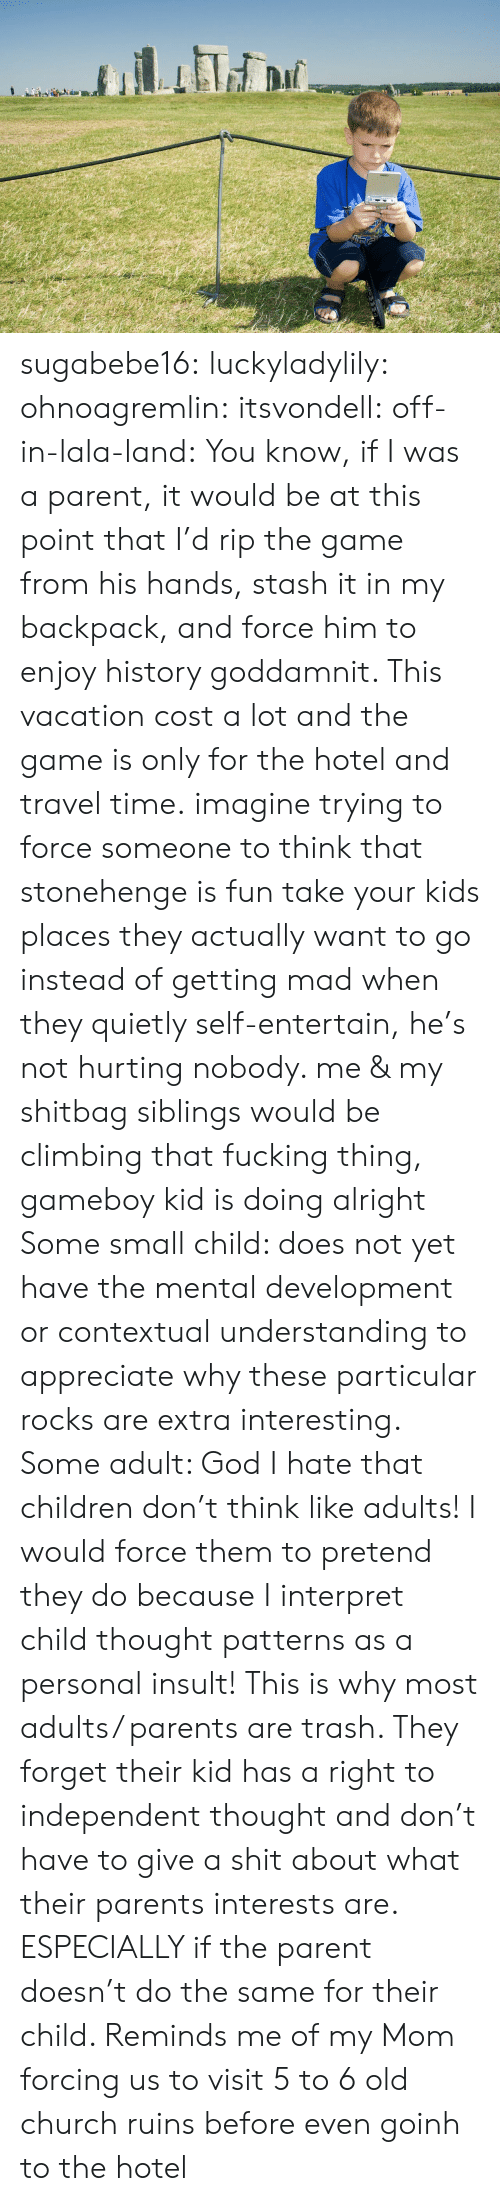 Patterns: sugabebe16:  luckyladylily:  ohnoagremlin:  itsvondell:  off-in-lala-land:  You know, if I was a parent, it would be at this point that I'd rip the game from his hands, stash it in my backpack, and force him to enjoy history goddamnit. This vacation cost a lot and the game is only for the hotel and travel time.  imagine trying to force someone to think that stonehenge is fun   take your kids places they actually want to go instead of getting mad when they quietly self-entertain, he's not hurting nobody. me & my shitbag siblings would be climbing that fucking thing, gameboy kid is doing alright    Some small child: does not yet have the mental development or contextual understanding to appreciate why these particular rocks are extra interesting. Some adult: God I hate that children don't think like adults! I would force them to pretend they do because I interpret child thought patterns as a personal insult!   This is why most adults/ parents are trash. They forget their kid has a right to independent thought and don't have to give a shit about what their parents interests are. ESPECIALLY if the parent doesn't do the same for their child.   Reminds me of my Mom forcing us to visit 5 to 6 old church ruins before even goinh to the hotel